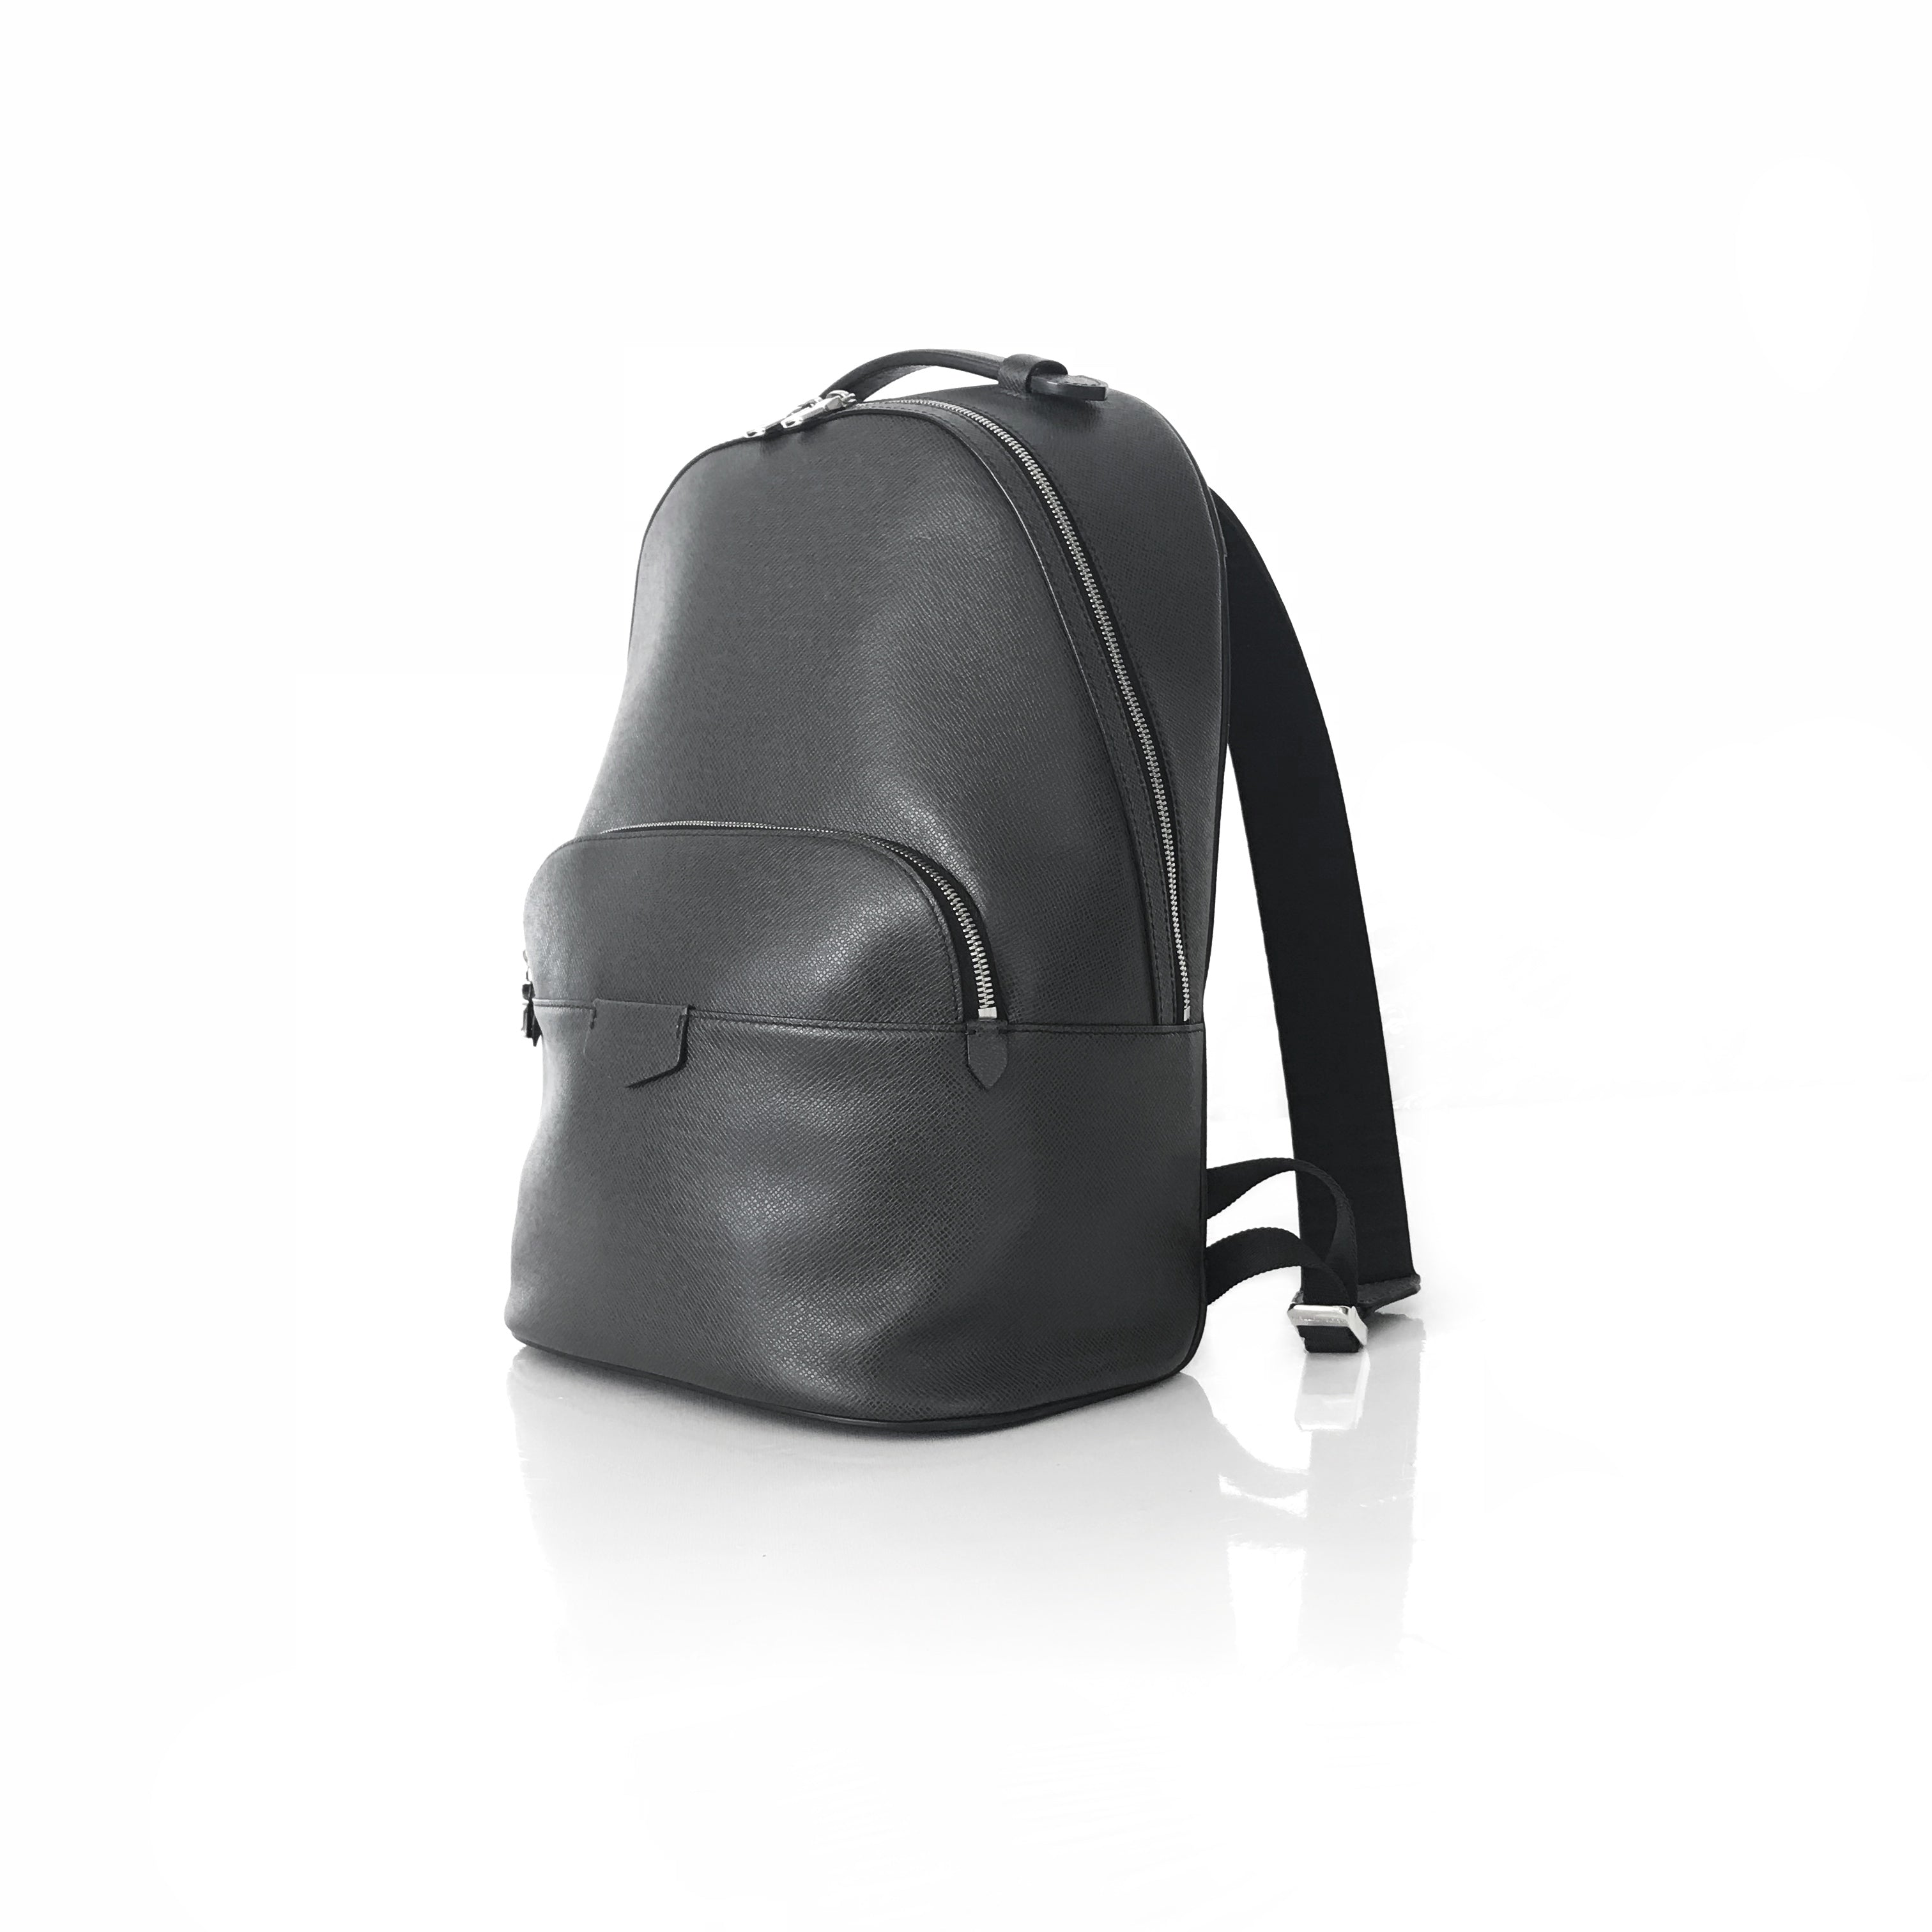 77f947e6d40a You may also like. Louis Vuitton Anton Backpack